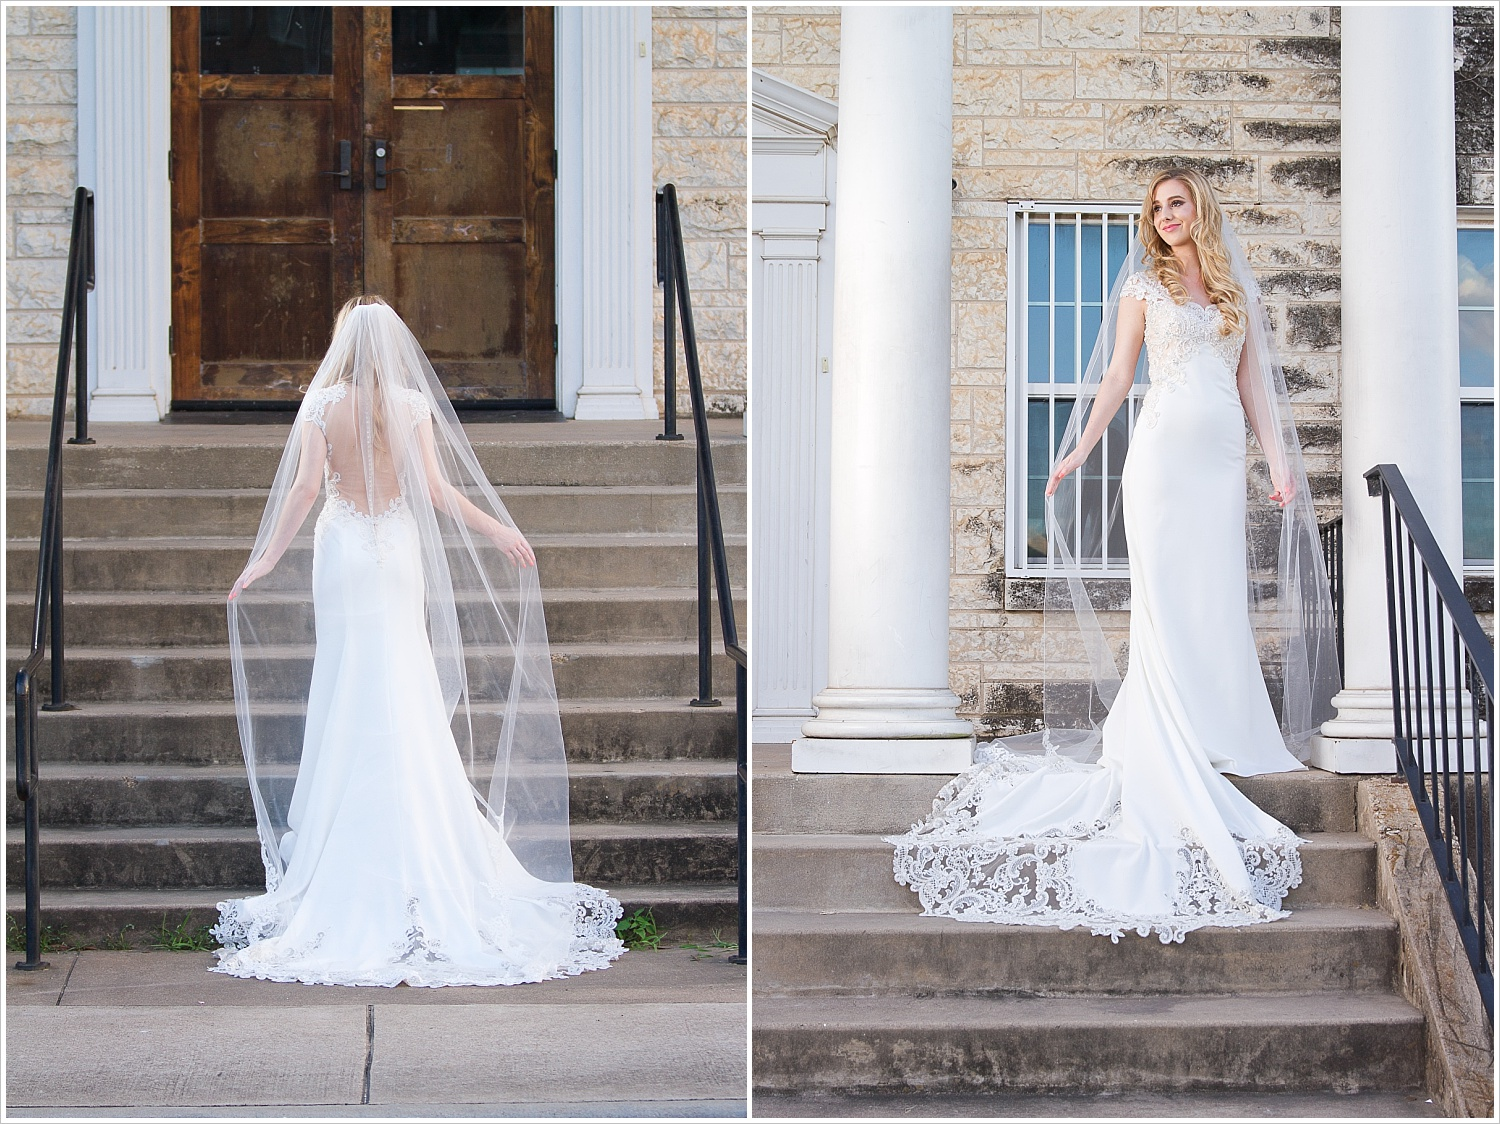 Romantic Styled Bridal Session Rapoport Academy In Waco Texas